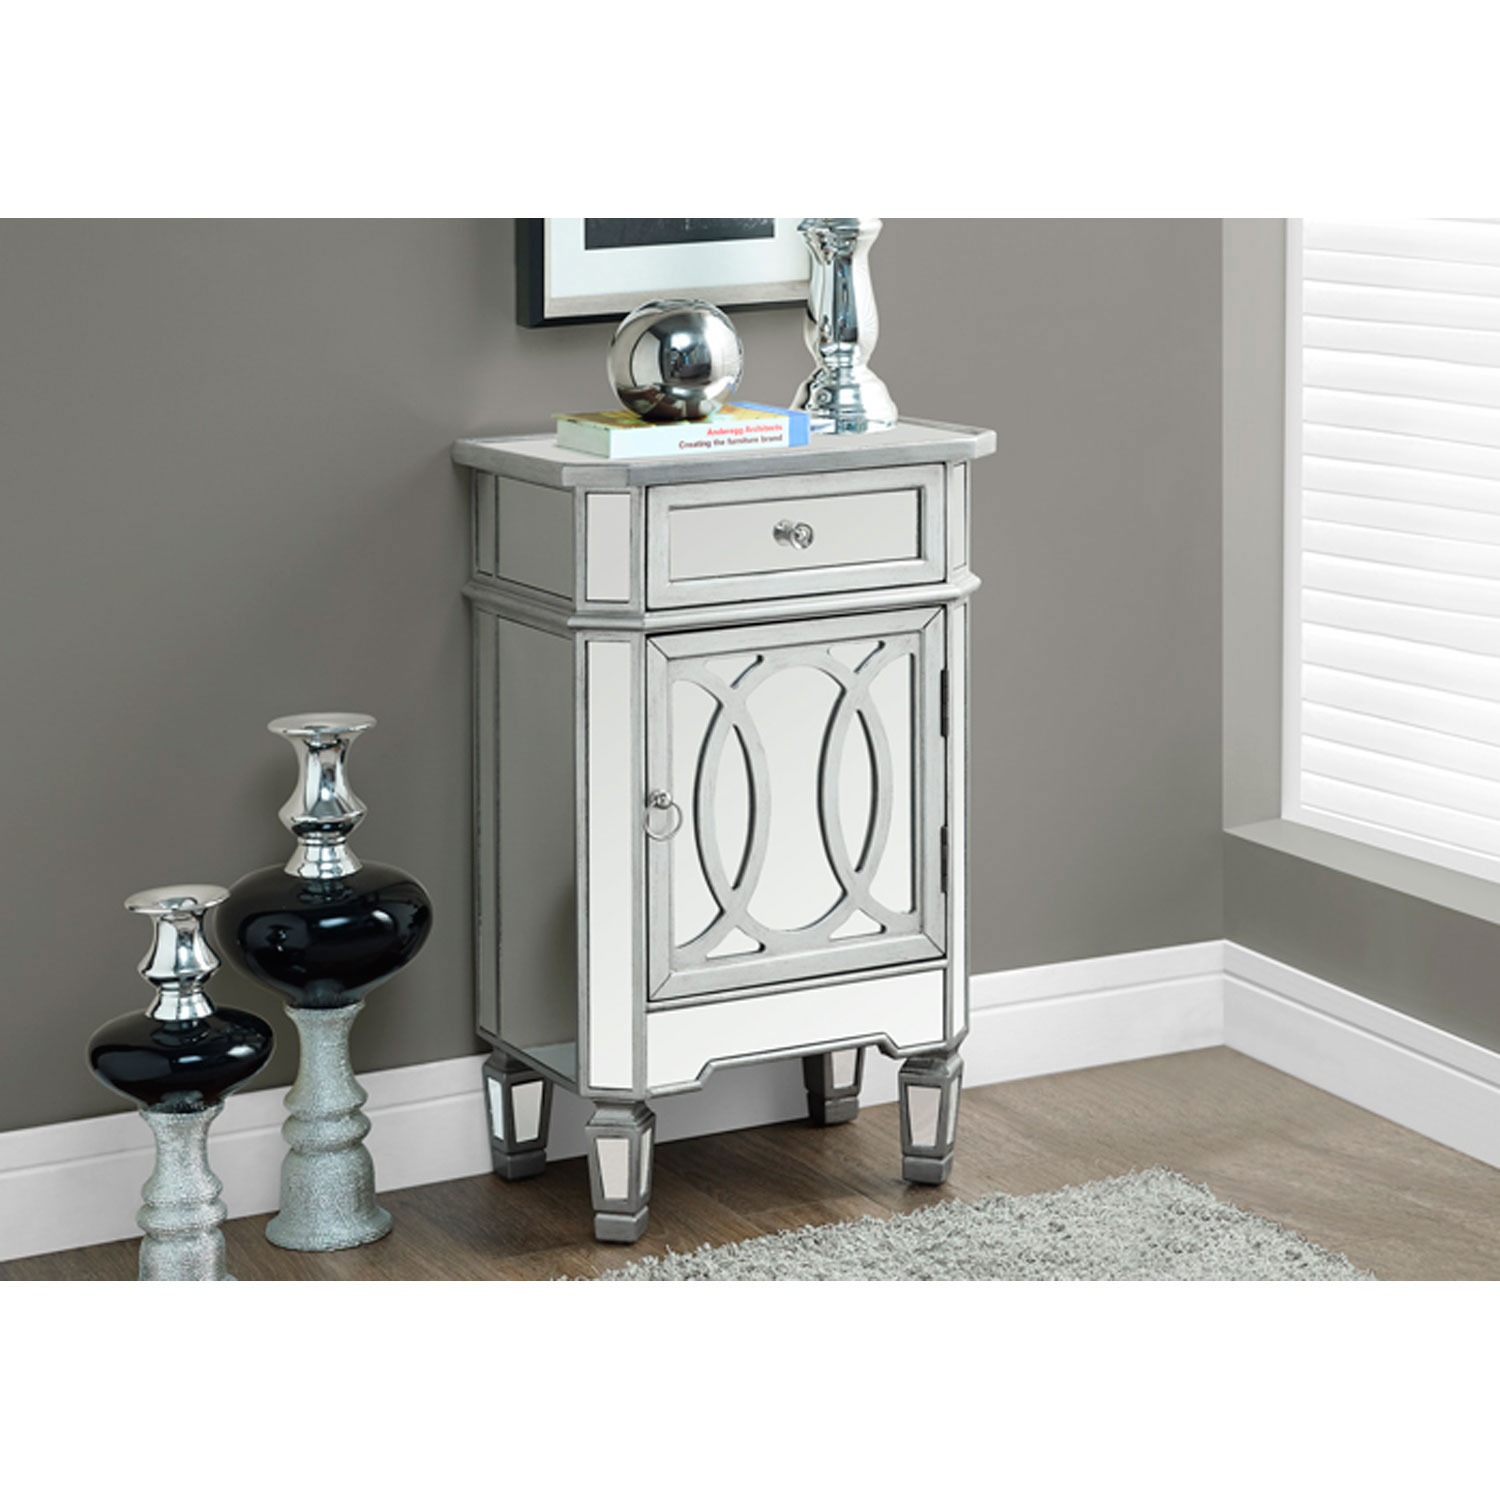 hawthorne ave silver inch accent table bellacor cabinet backyard gazebo wooden floorboards glass and marble round tablecloth small space living furniture designer tablecloths mini